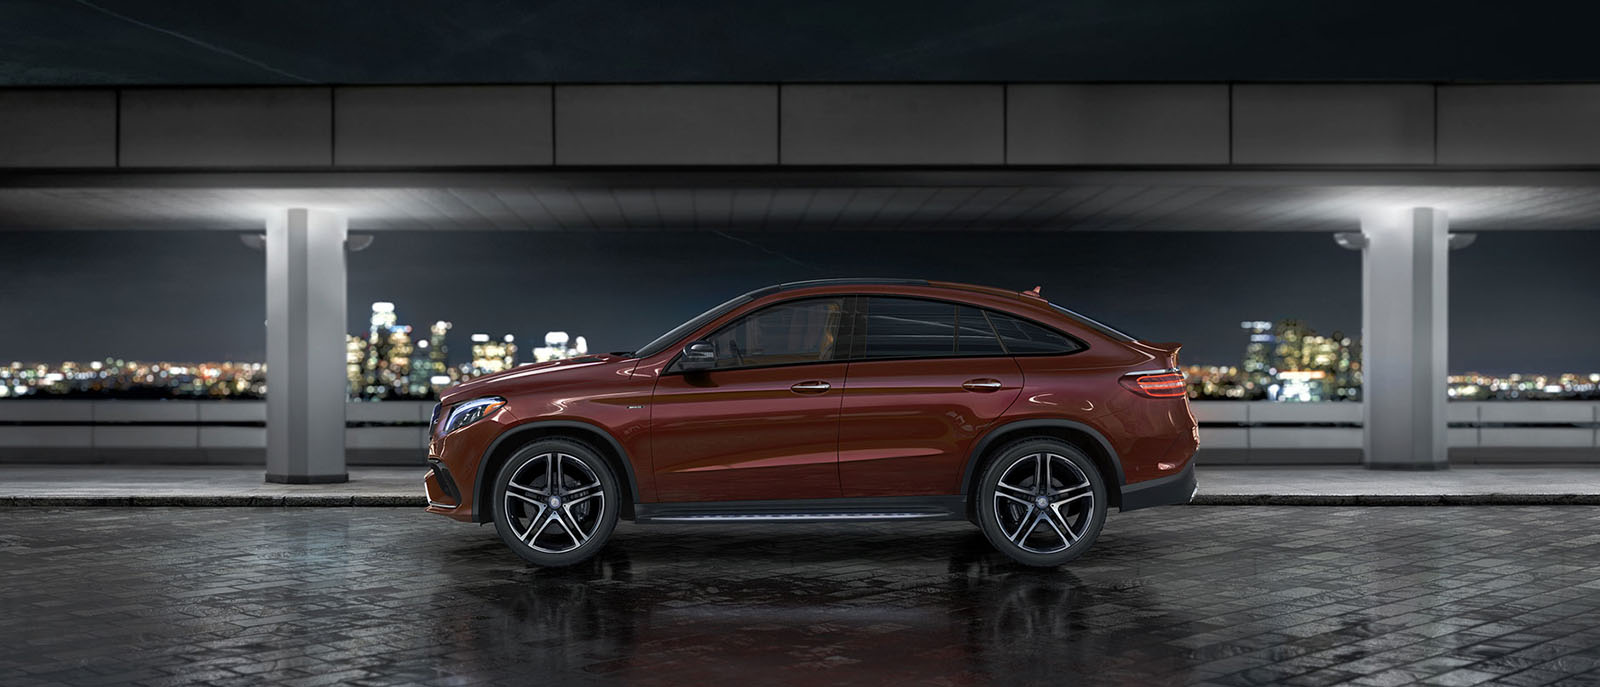 https://di-uploads-pod3.dealerinspire.com/vindeversautohausofsylvania/uploads/2015/09/2016-Mercedes-Benz-GLE-Coupe2.jpg